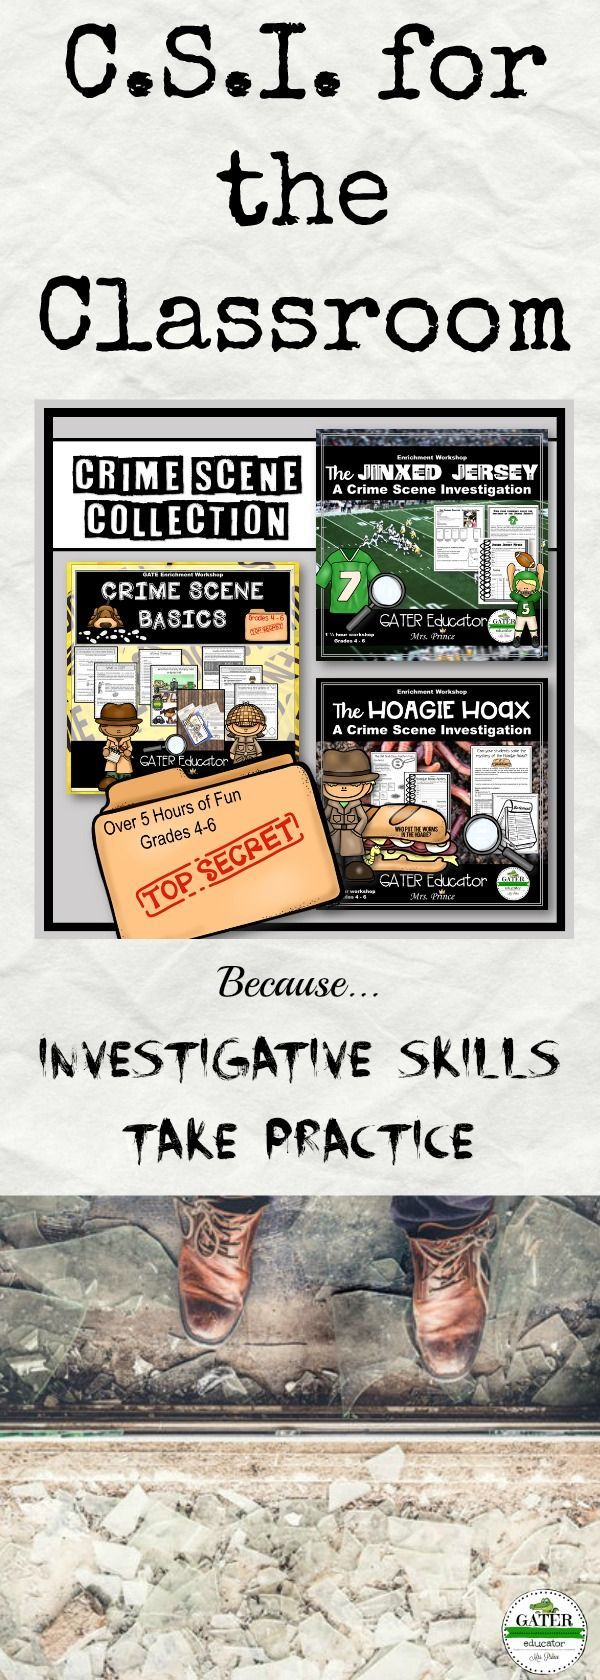 These CSI activities for kids and high ability learners are an interactive bundle of fun investigations and lesson plans. With over five hours of forensic science case studies, detective work, puzzles and other hands on activities, your 4th, 5th and 6th grade students will be Crime Scene professionals in no time. These activities are perfect for Fourth, Fifth and Sixth grade classrooms as well as GATE or Homeschool. The easy prep lesson plans makes them great for sub plans as well.